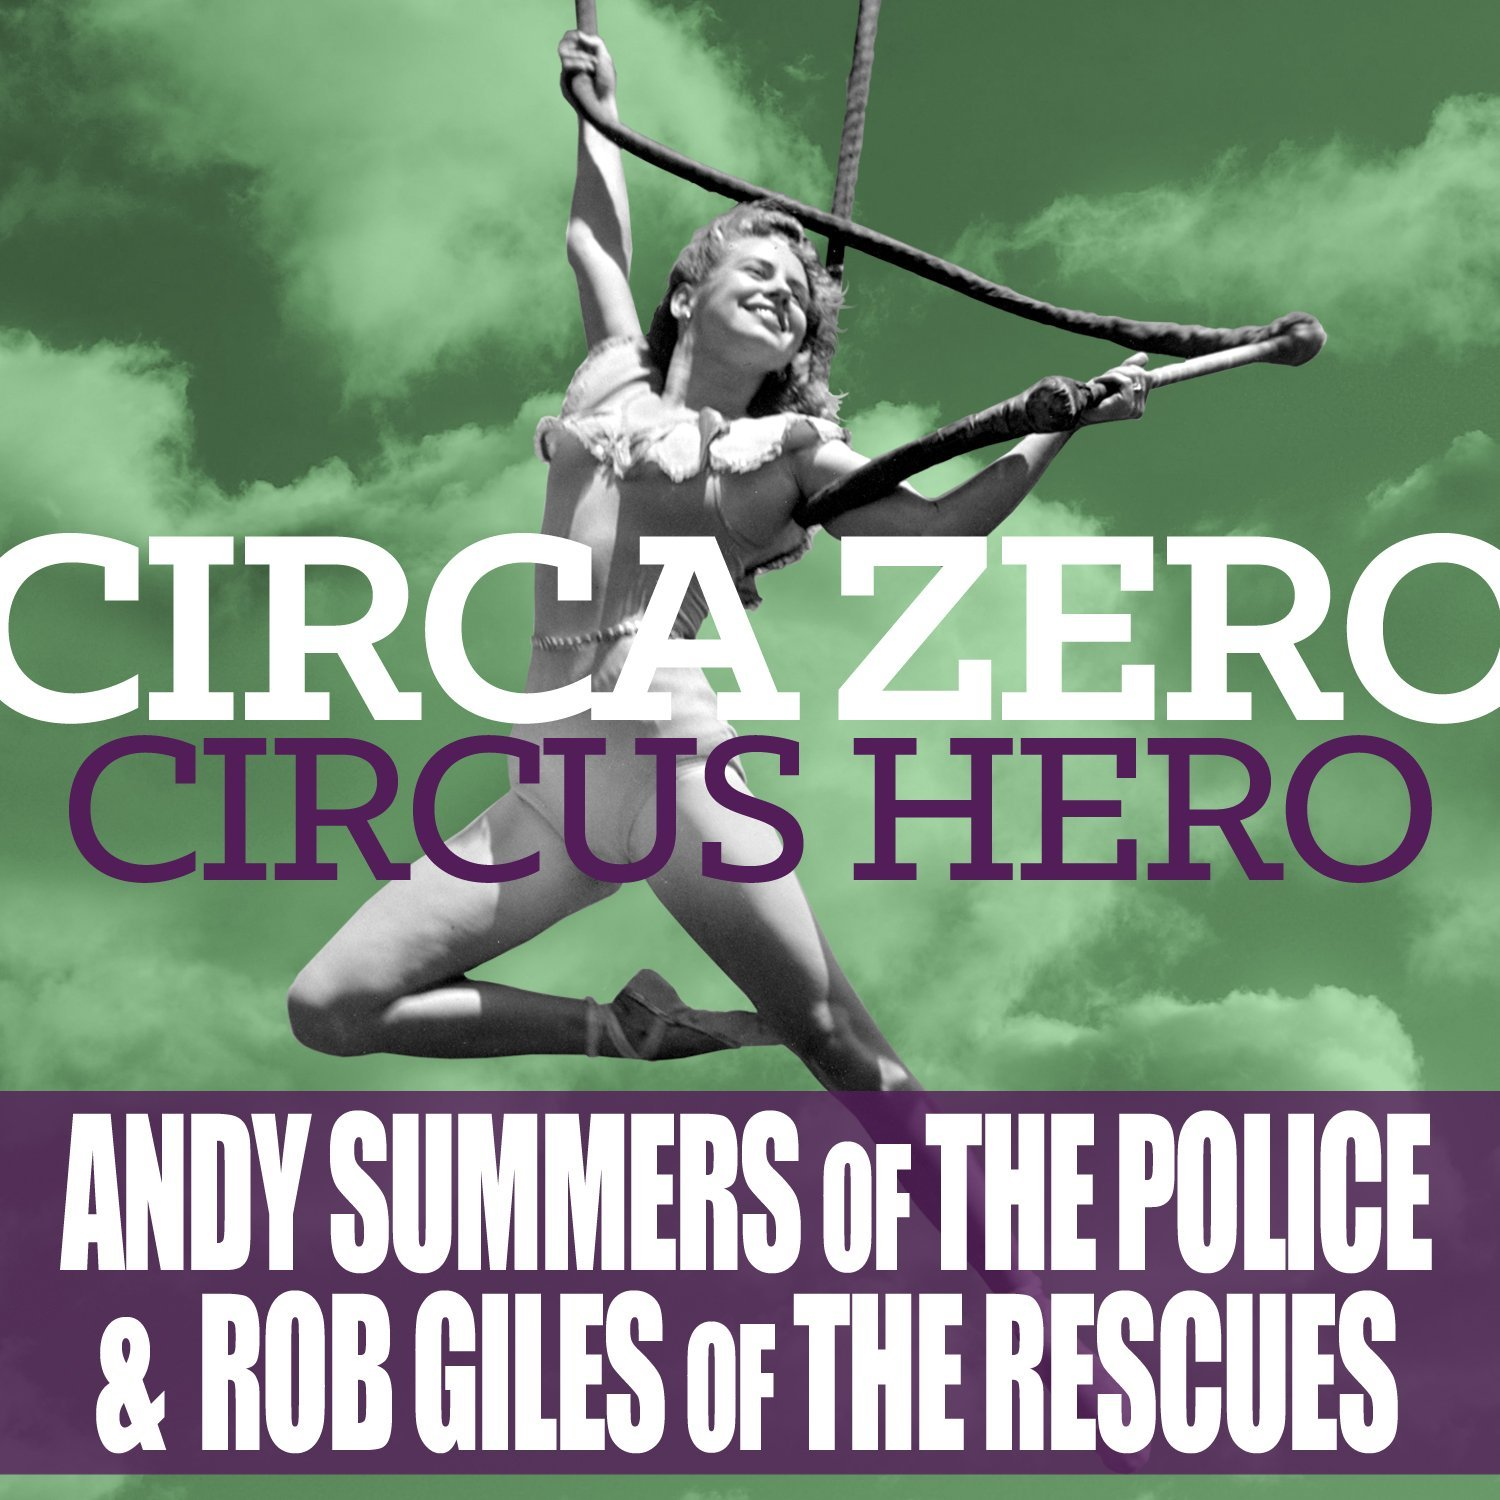 ANDY SUMMERS/CIRCA ZERO